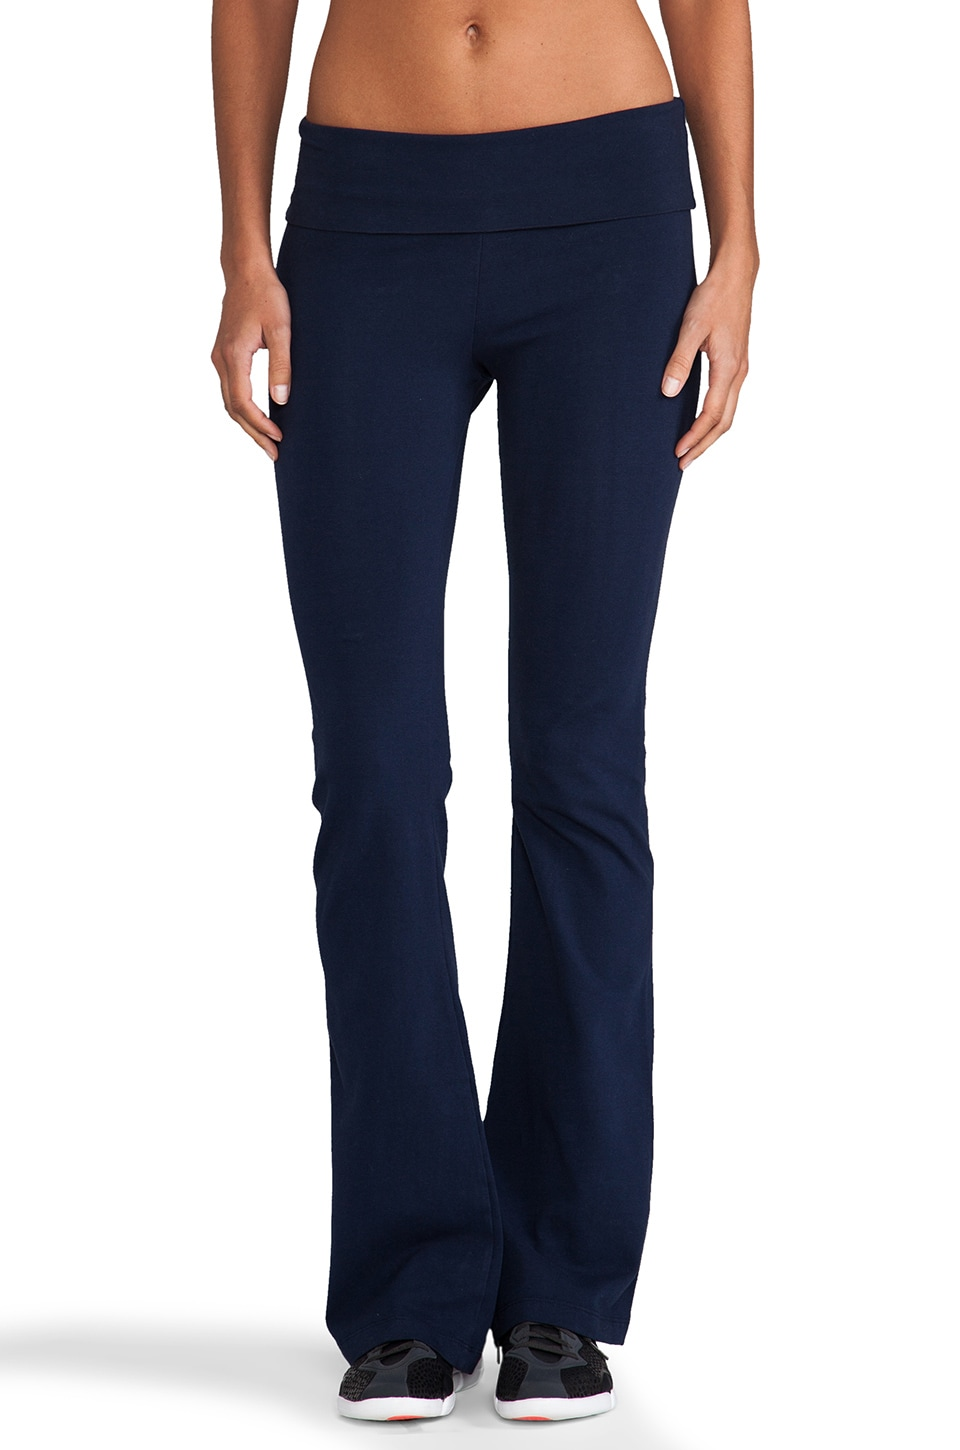 SOLOW Basics Fold Over Pant in Navy